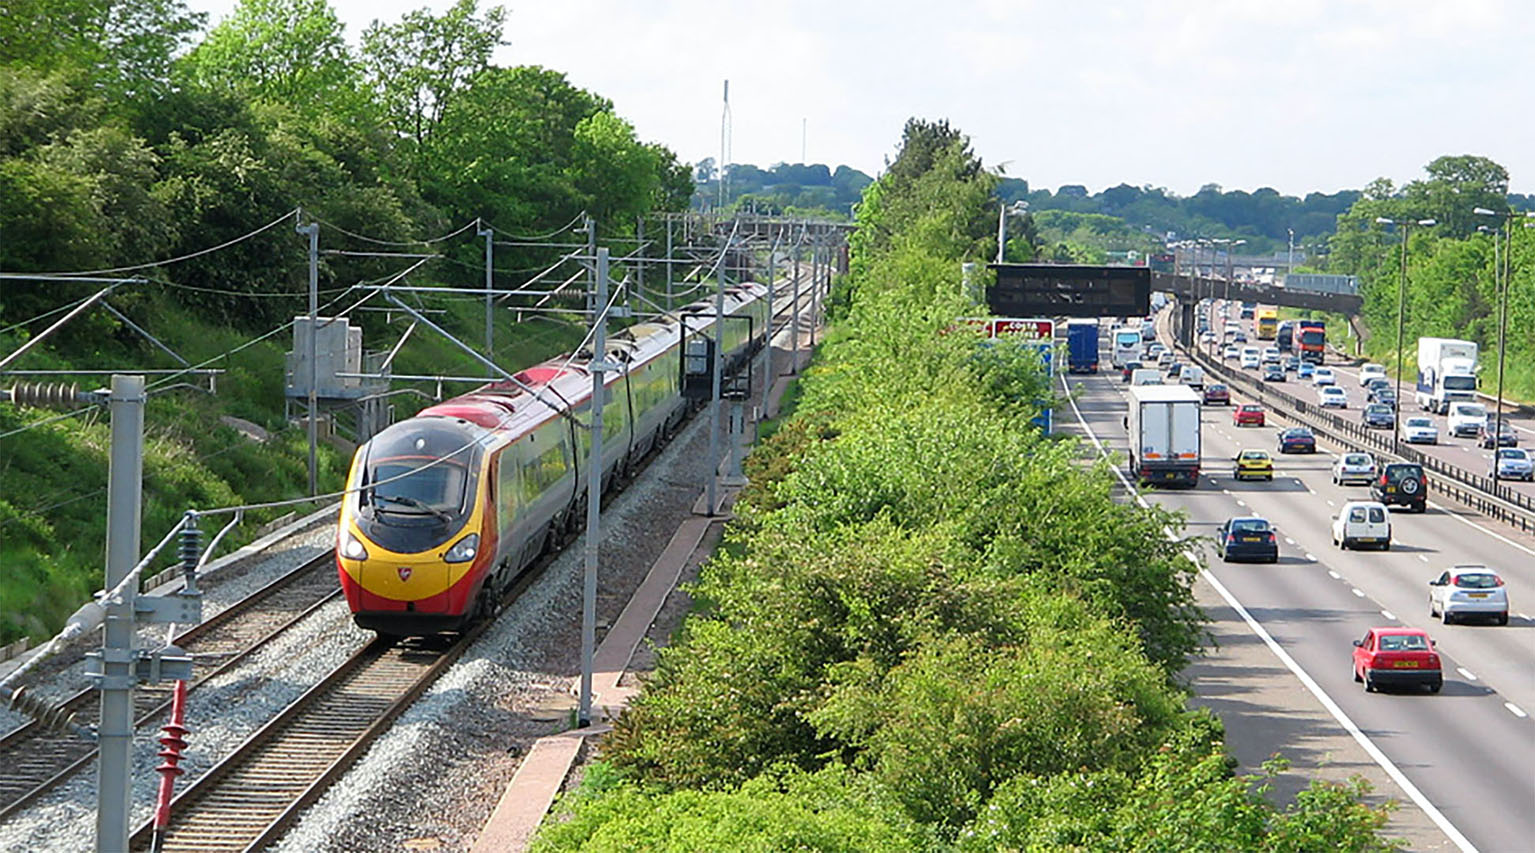 Railway line and motorway running side by side